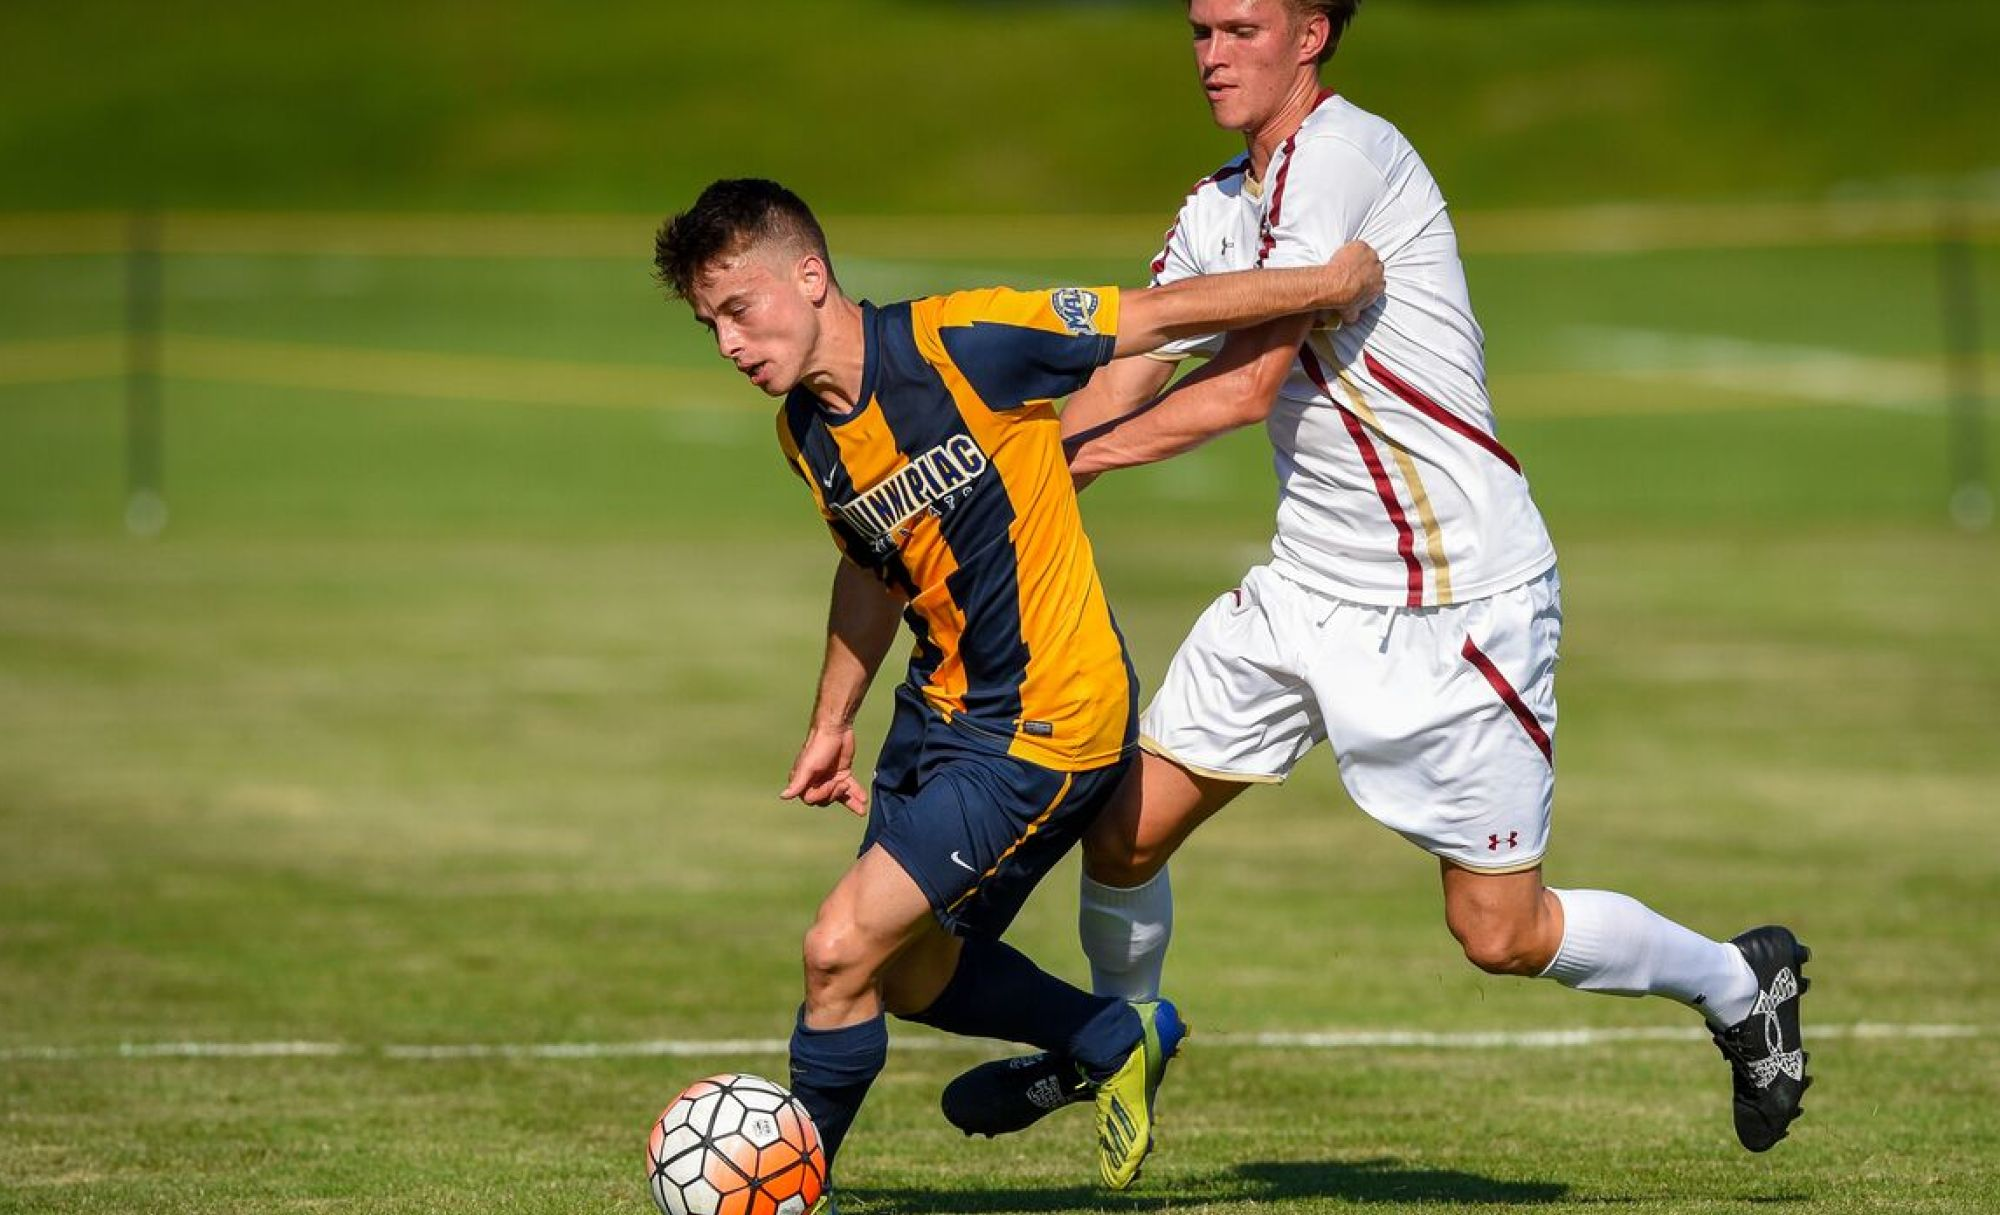 QU Men's Soccer Hosts Monmouth on Saturday Looking to ...